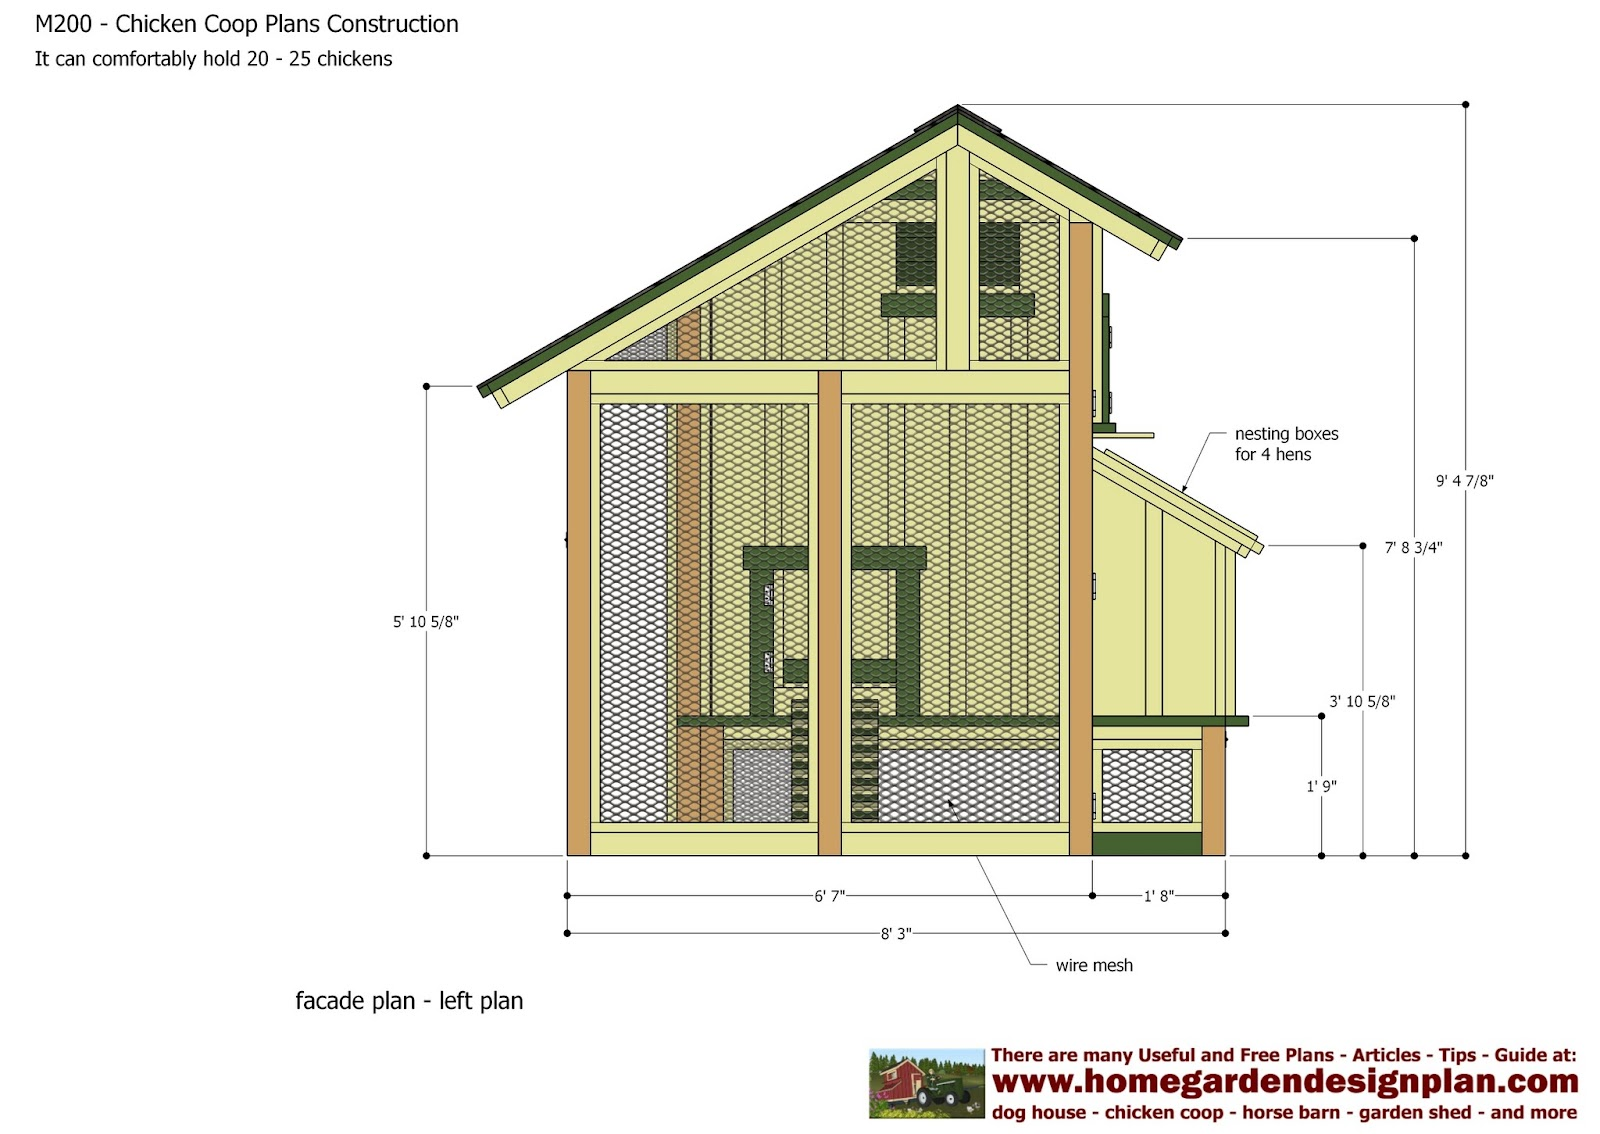 Printable chicken coop plans Make a house blueprint online free